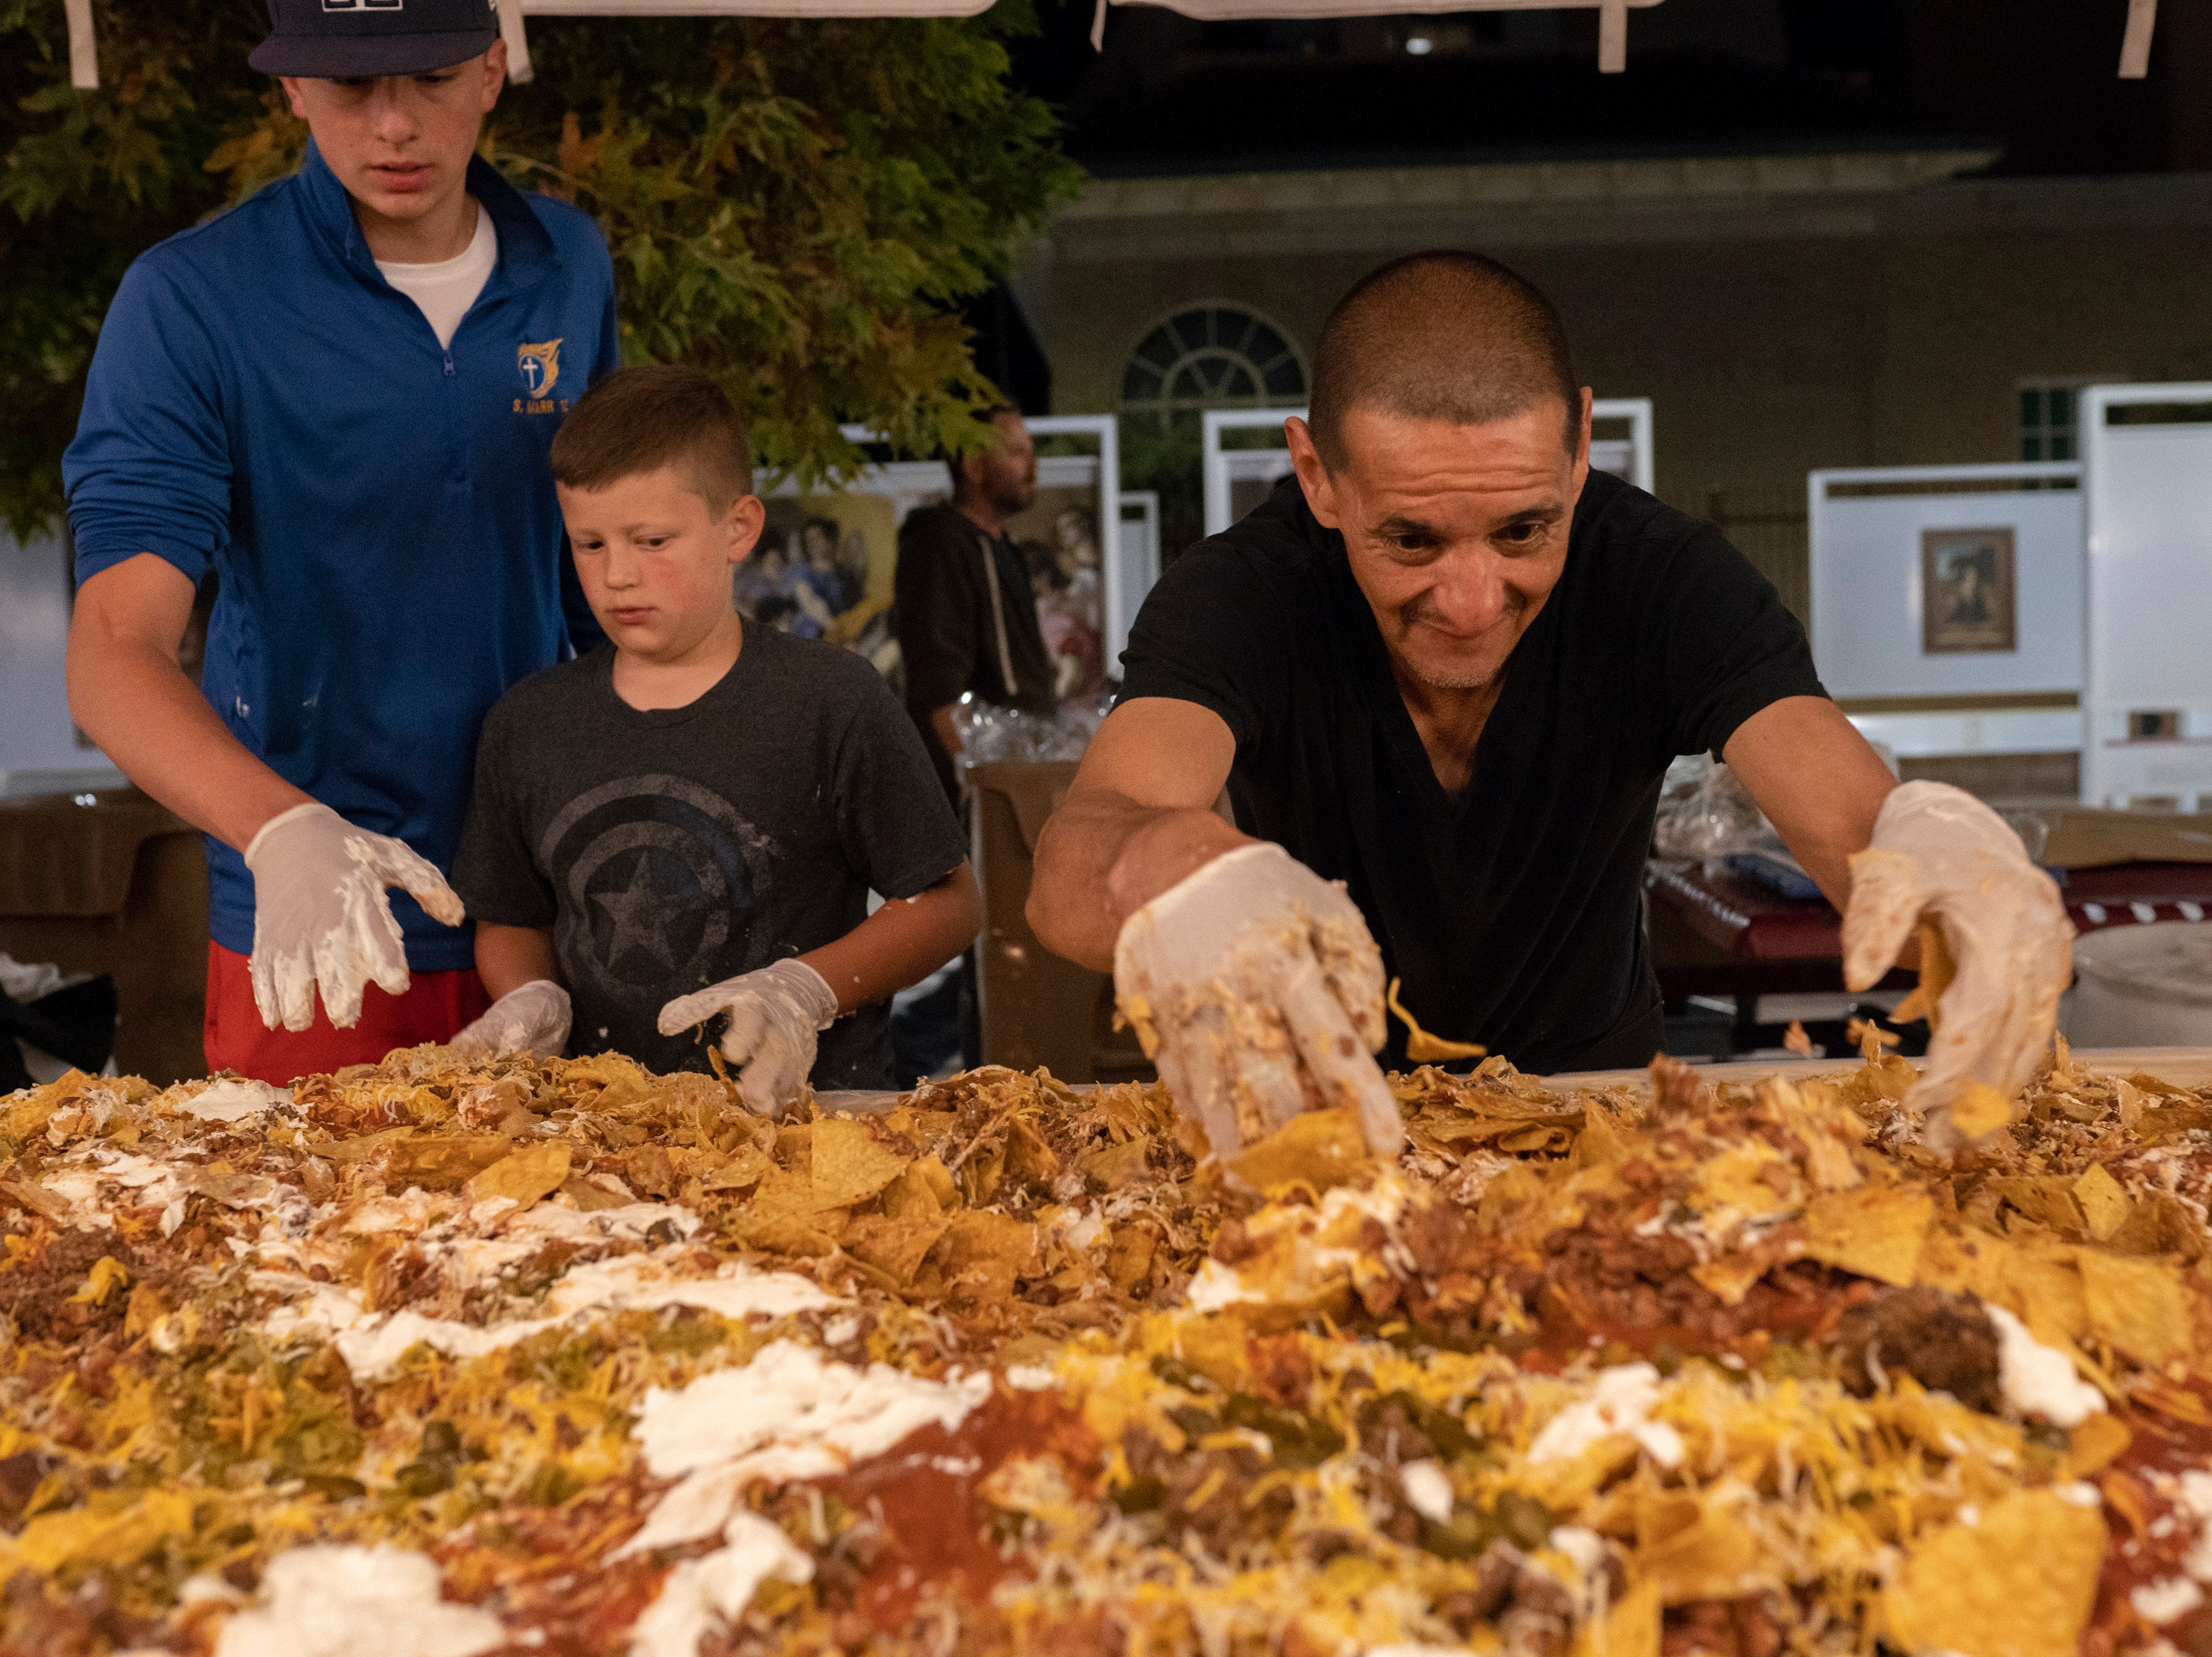 Event staff mix nacho ingredients during Noche de Nachos. Las Cruces unofficially set the record for world's largest serving of nachos Saturday, Nov. 10, 2018, in downtown Las Cruces.